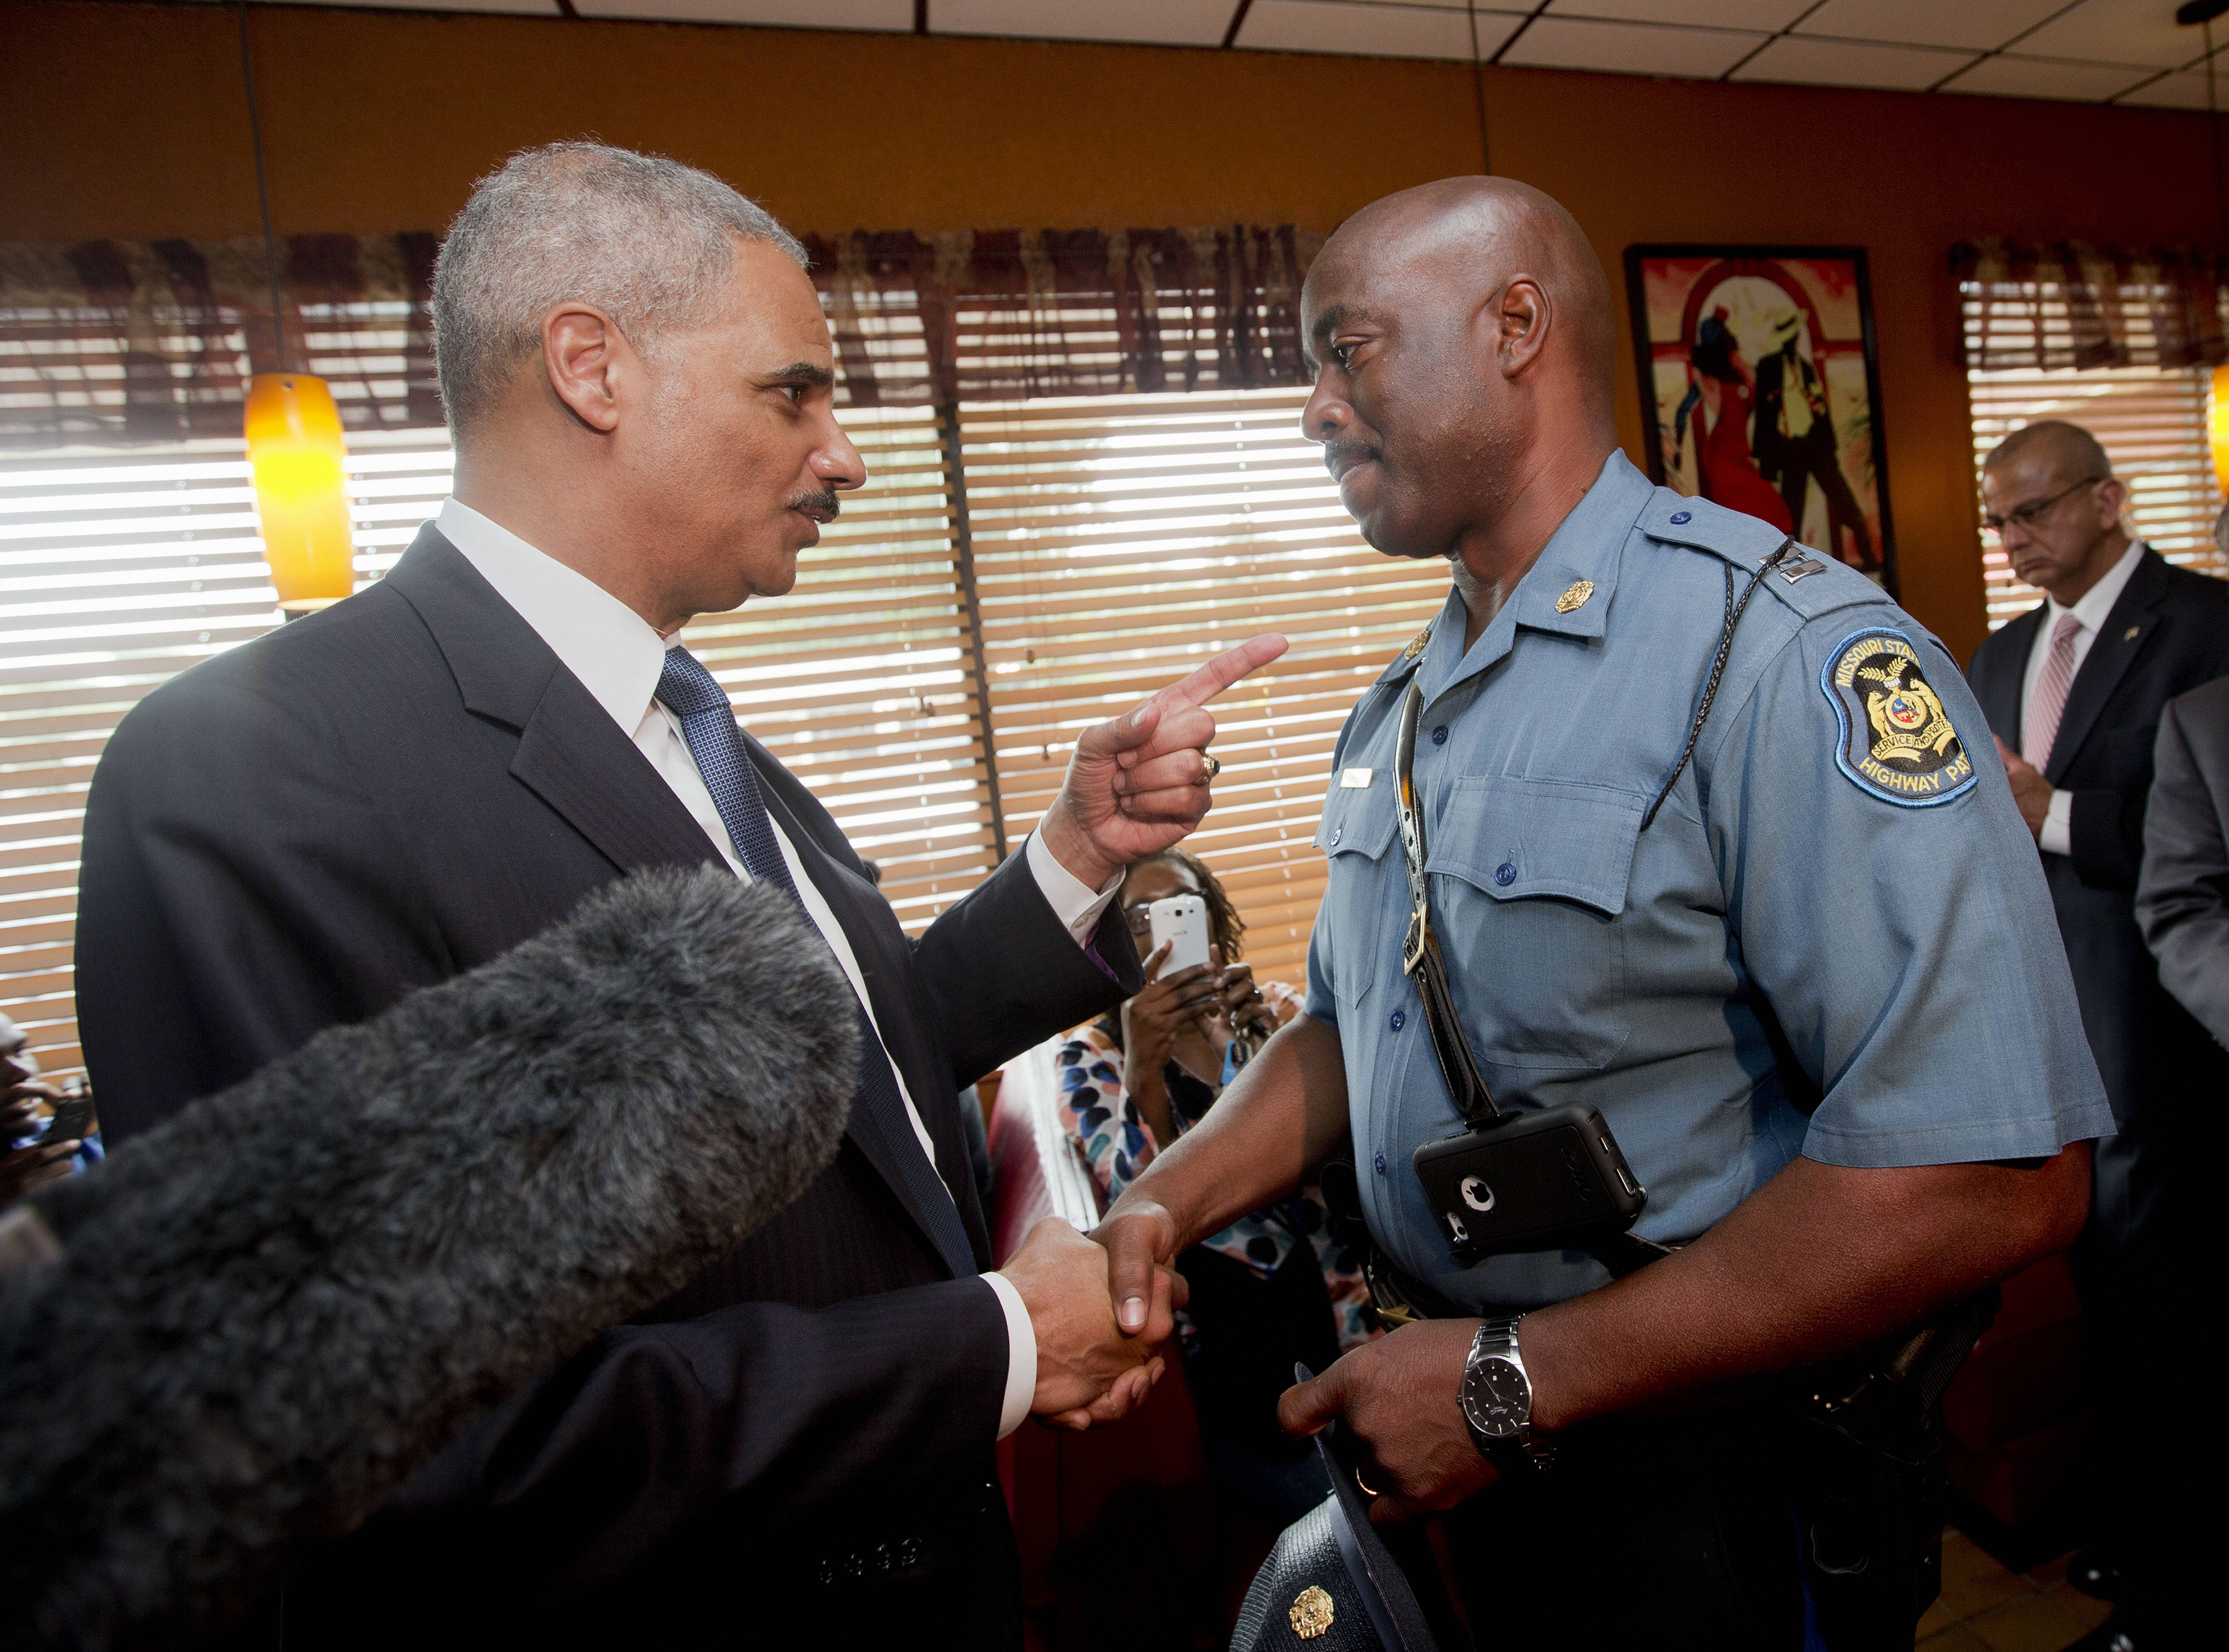 Attorney General Eric Holder talks with Capt. Ron Johnson of the Missouri State Highway Patrol on Wednesday in Florrissant, Mo.